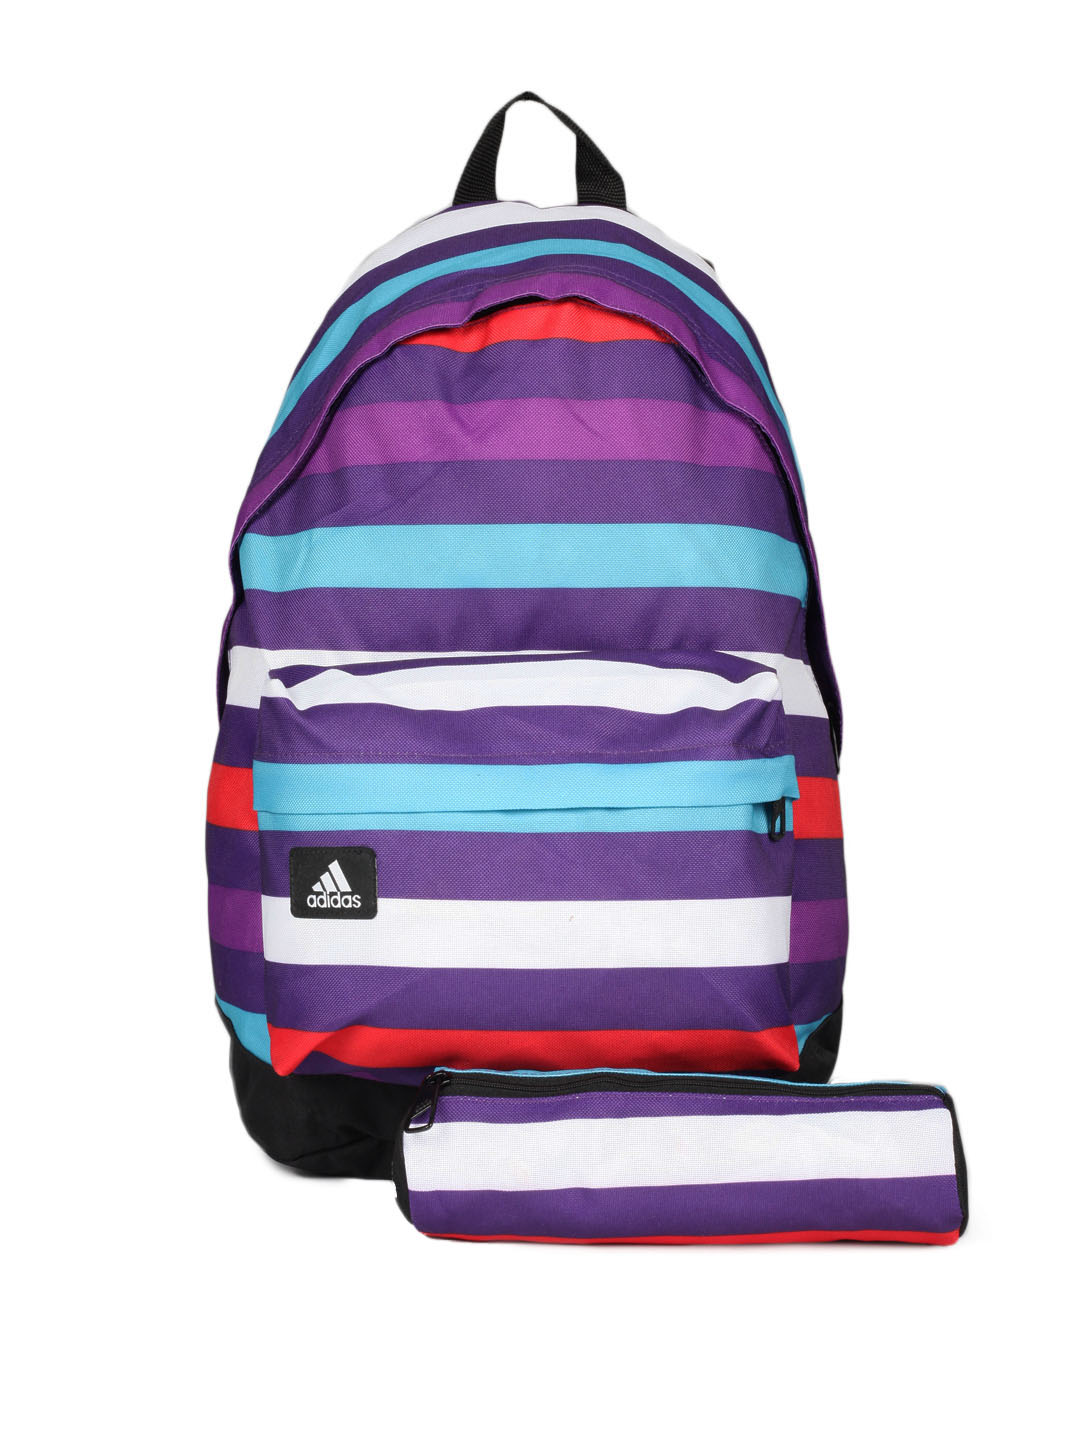 the gallery for gt adidas bags for girls purple